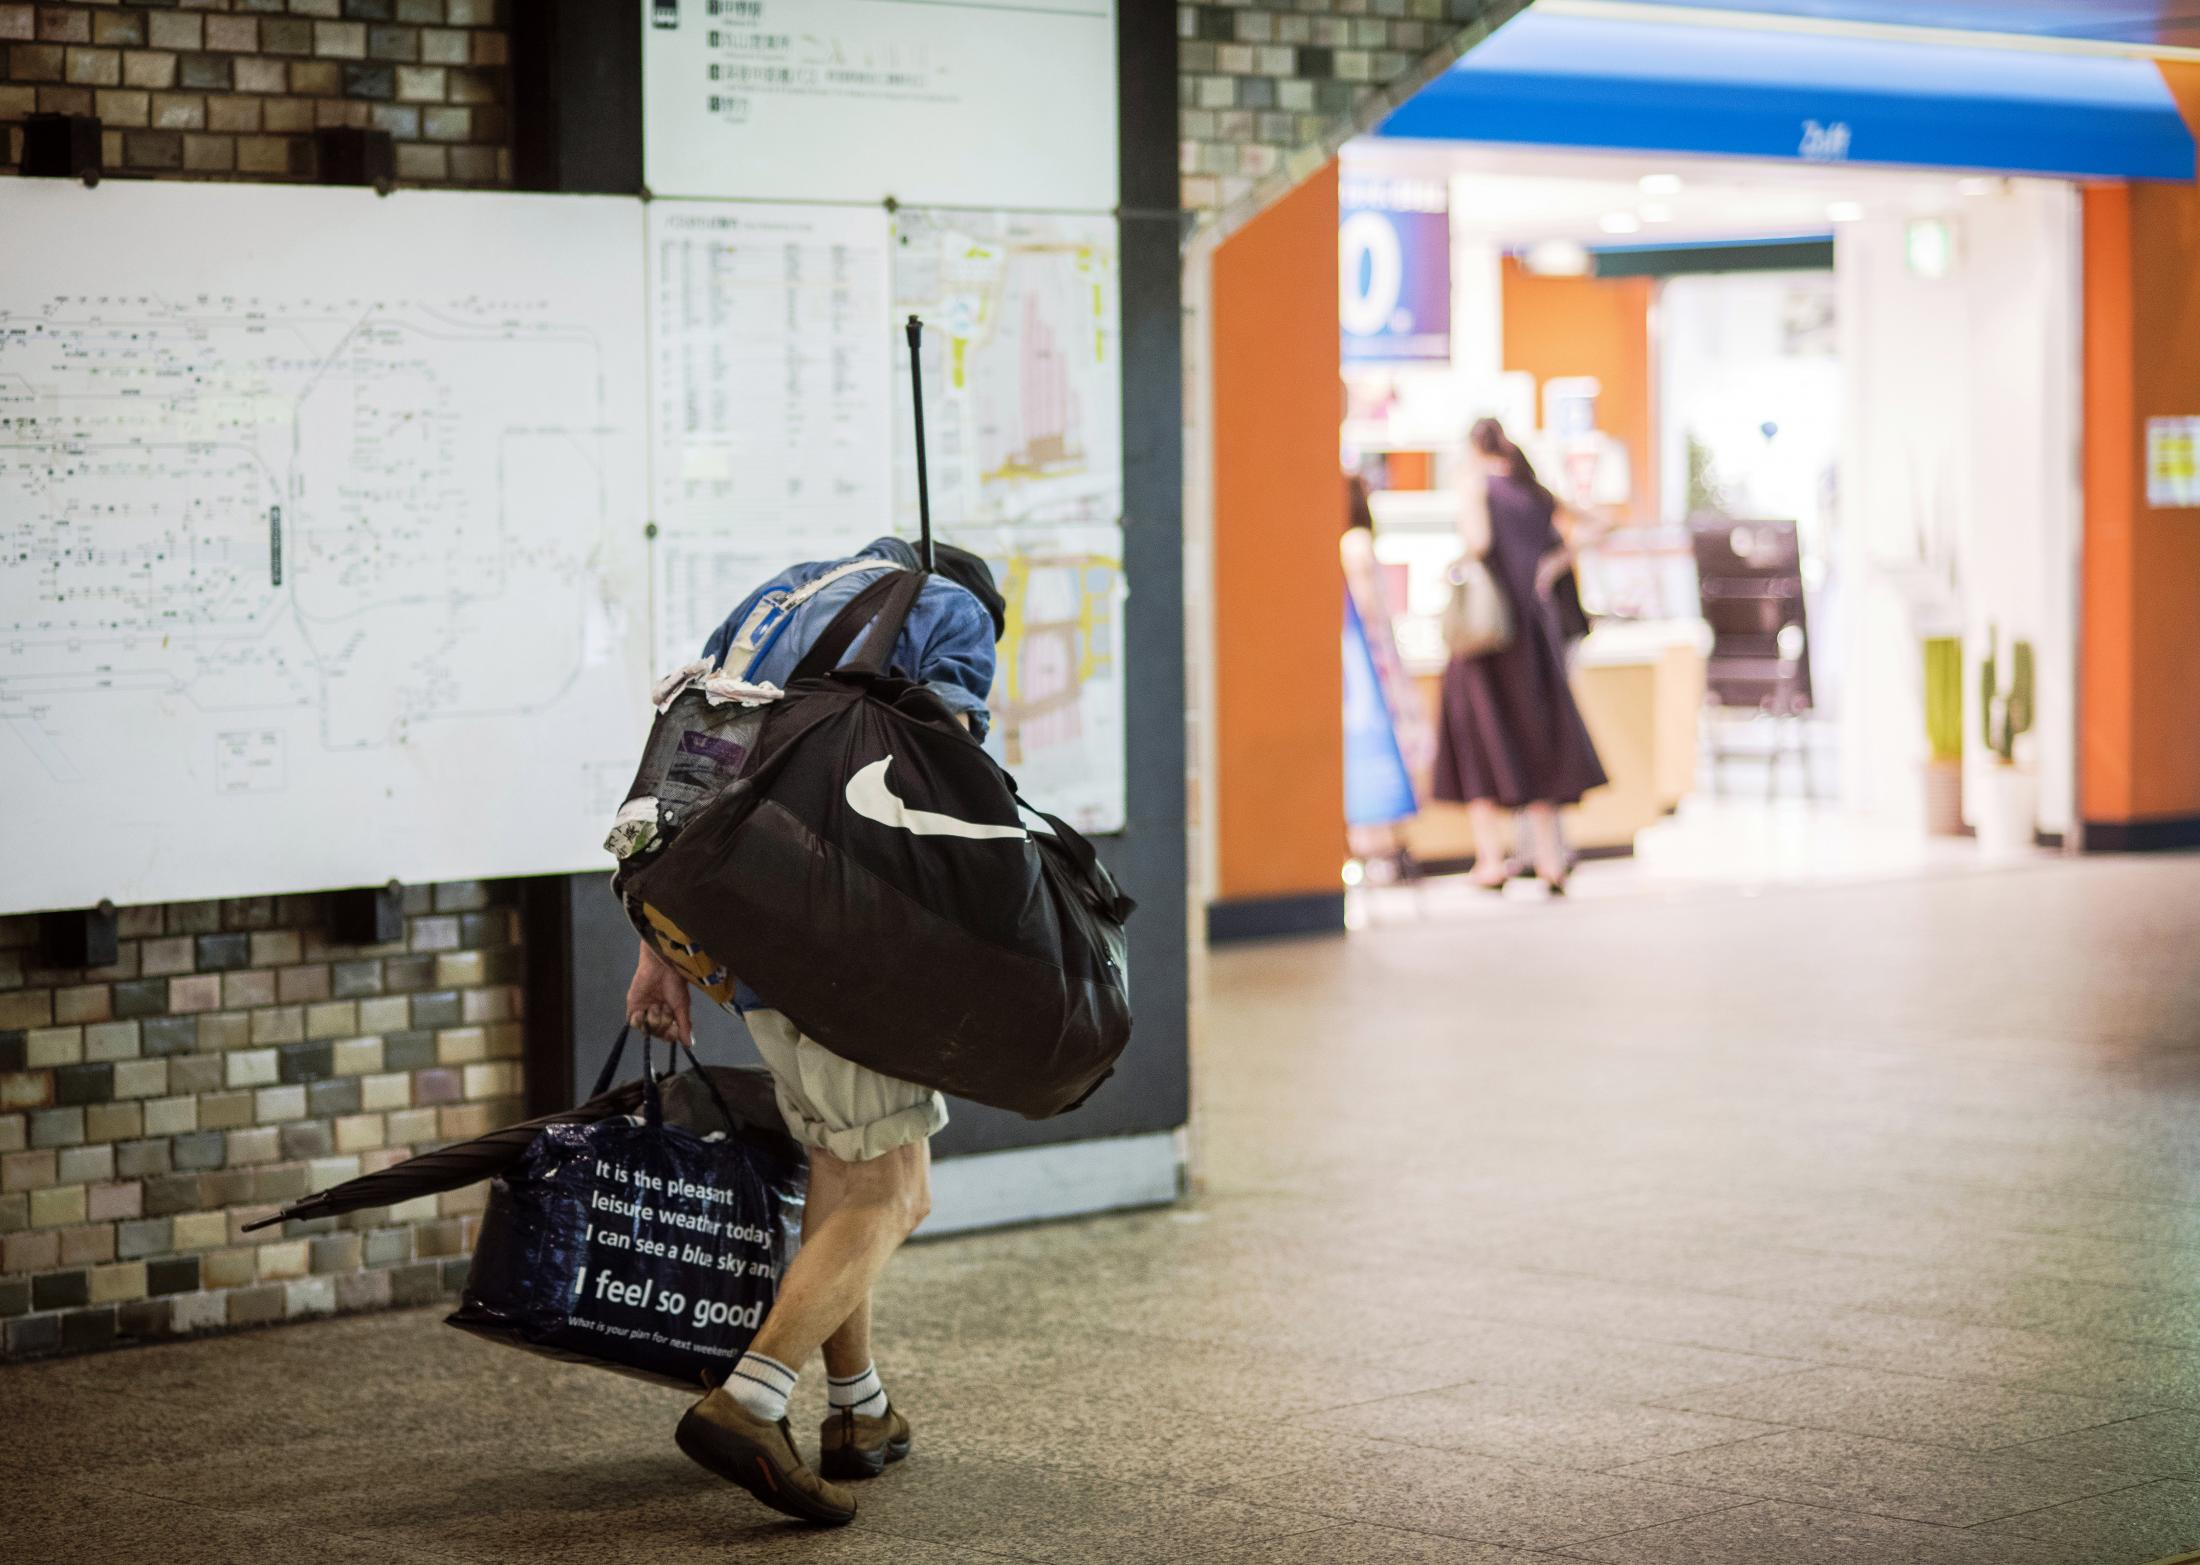 A homeless man wanders around  Shinjuku station, Tokyo, in the time of COVID-19.